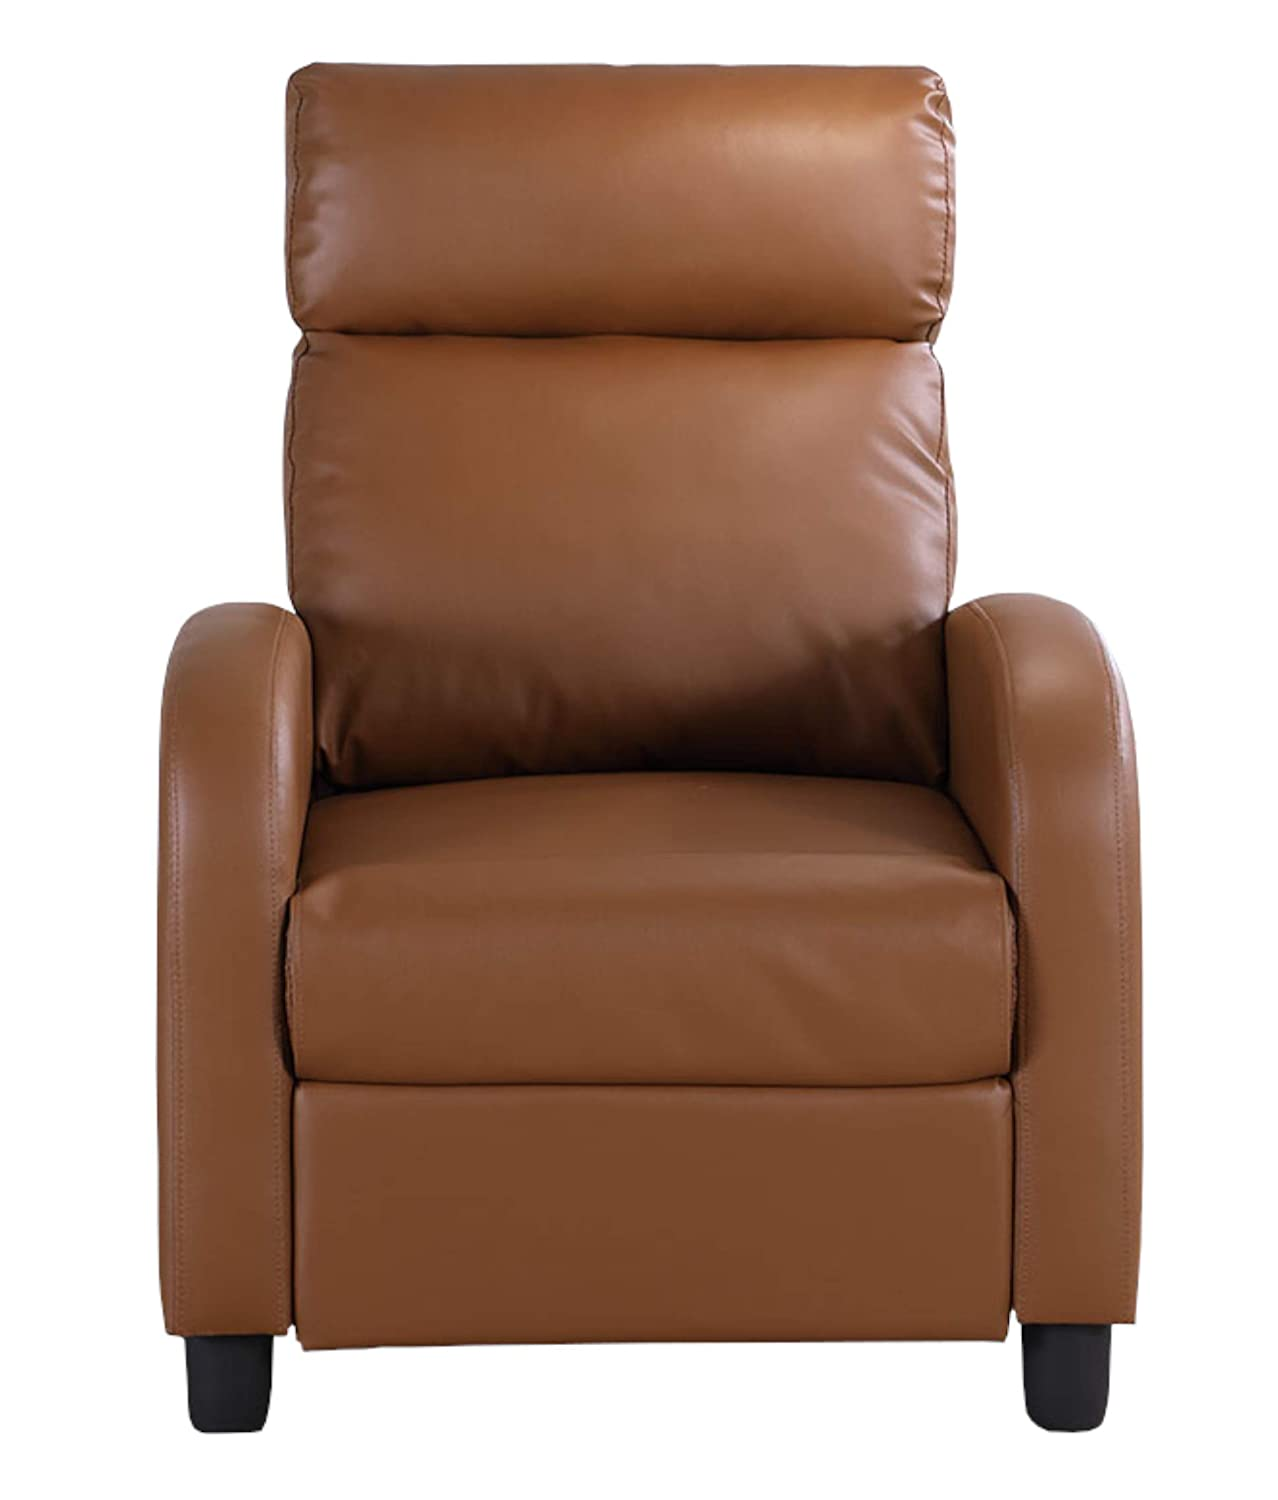 Brown NHI Express Anabelle Recliner, Grey